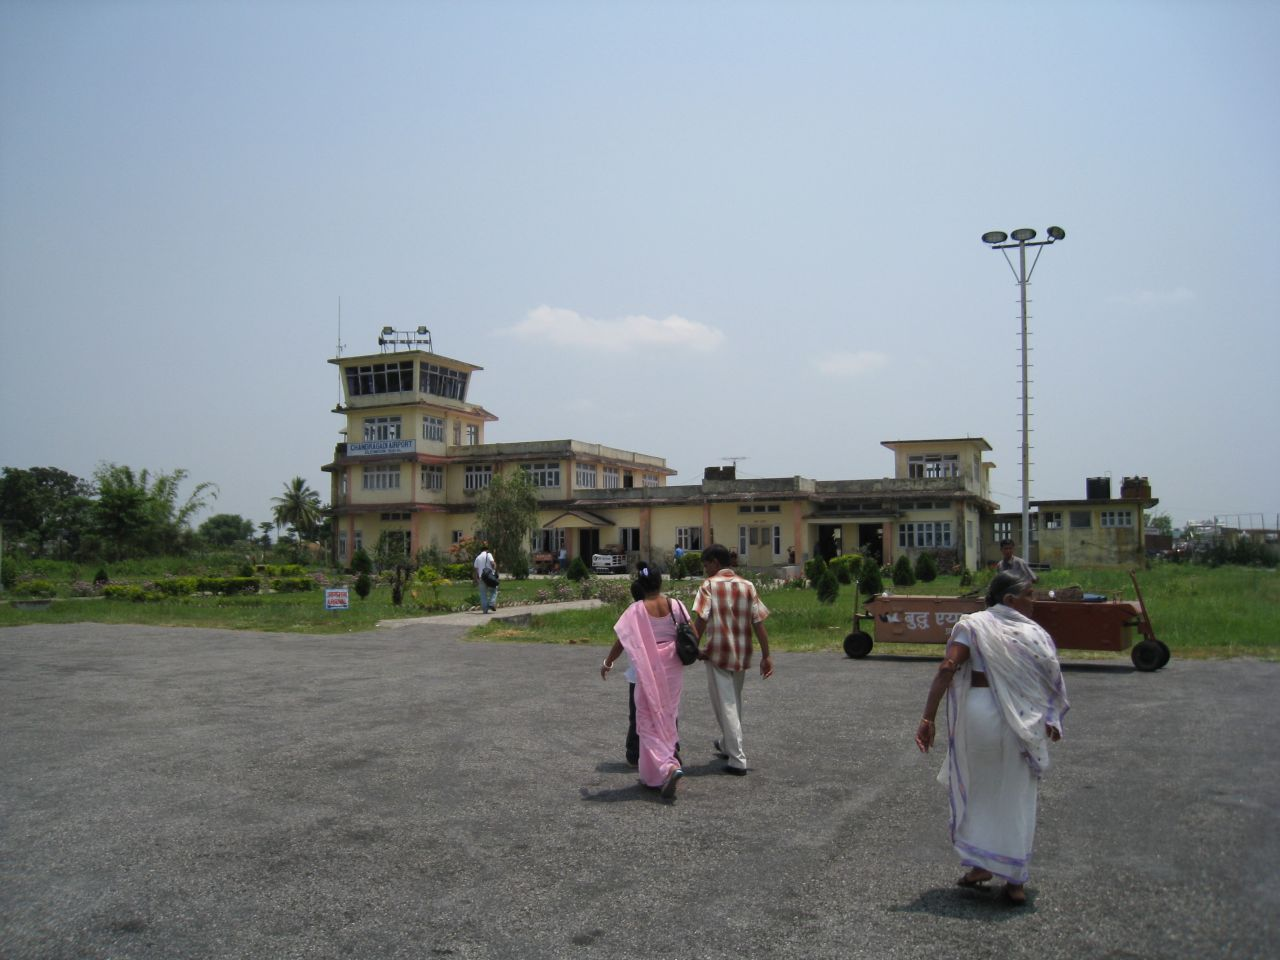 Tiny Bhadrapur Airport in eastern Nepal is a gateway to India